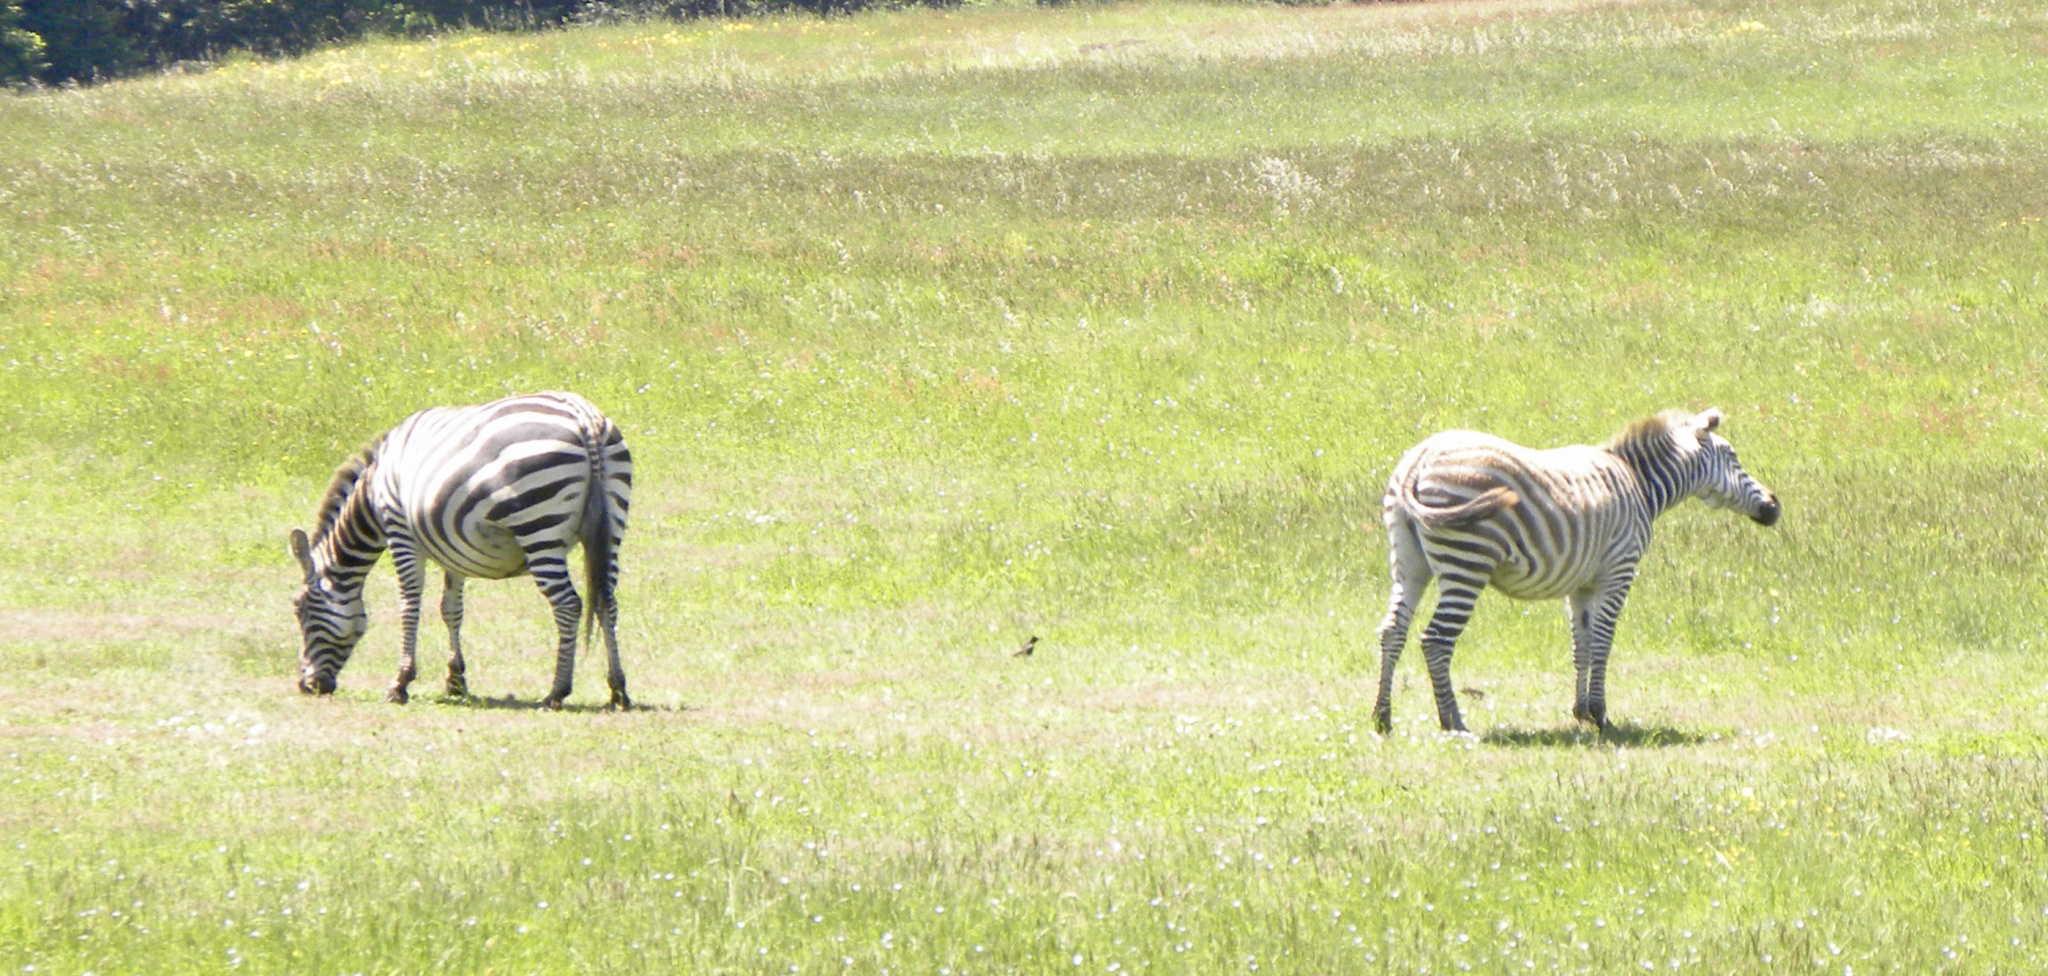 Have you seen a zebra lately?-fullsizeoutput_e2f.jpg